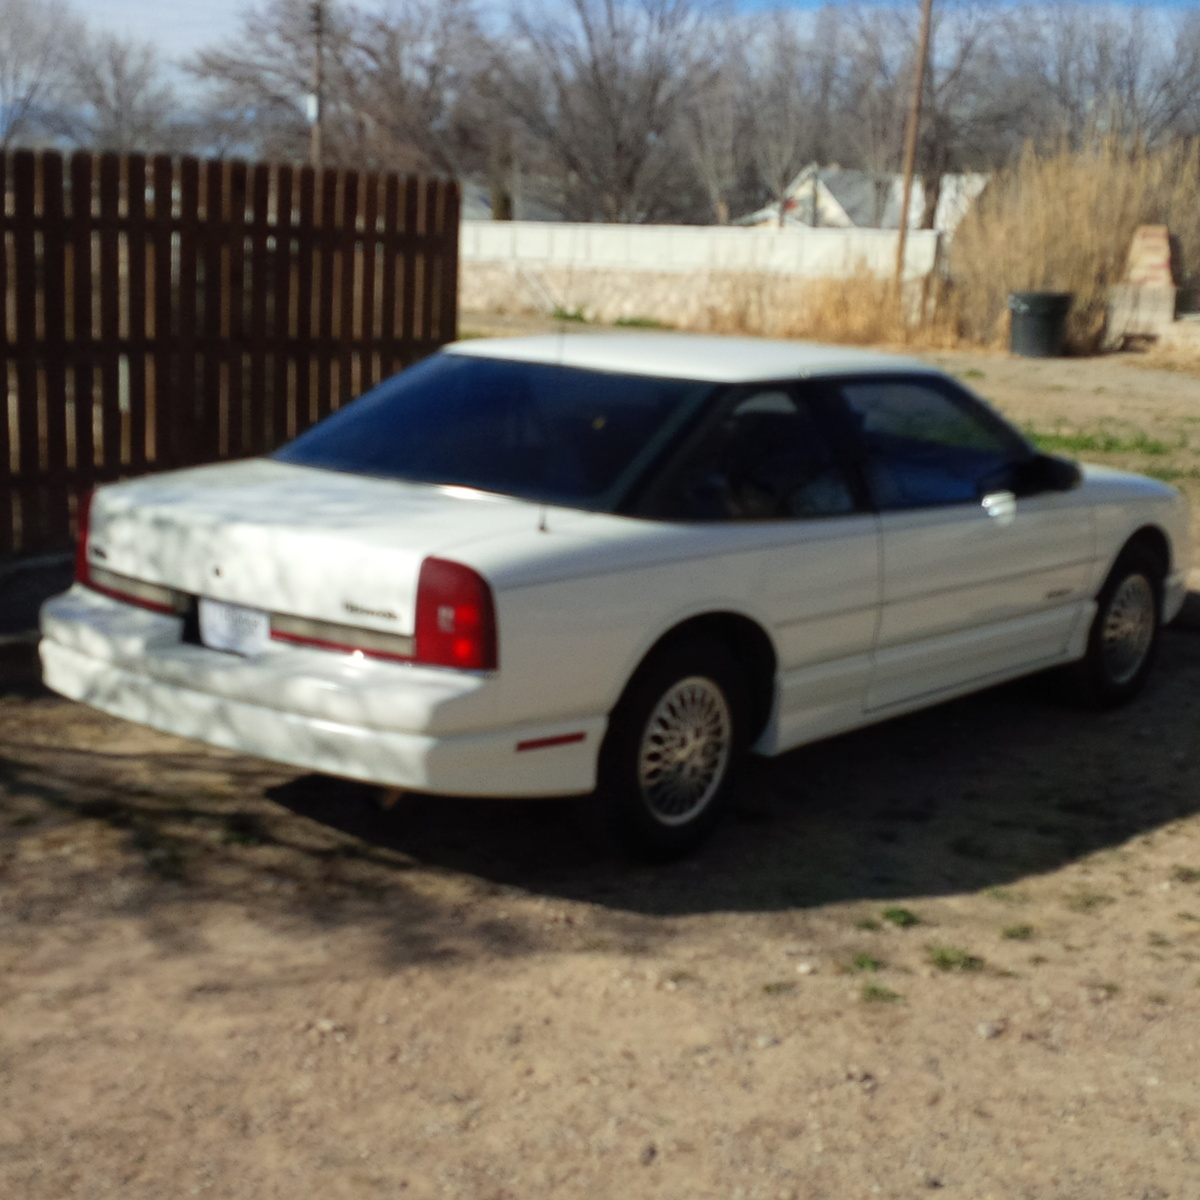 1991 Oldsmobile Cutlass Supreme, My 1991, exterior